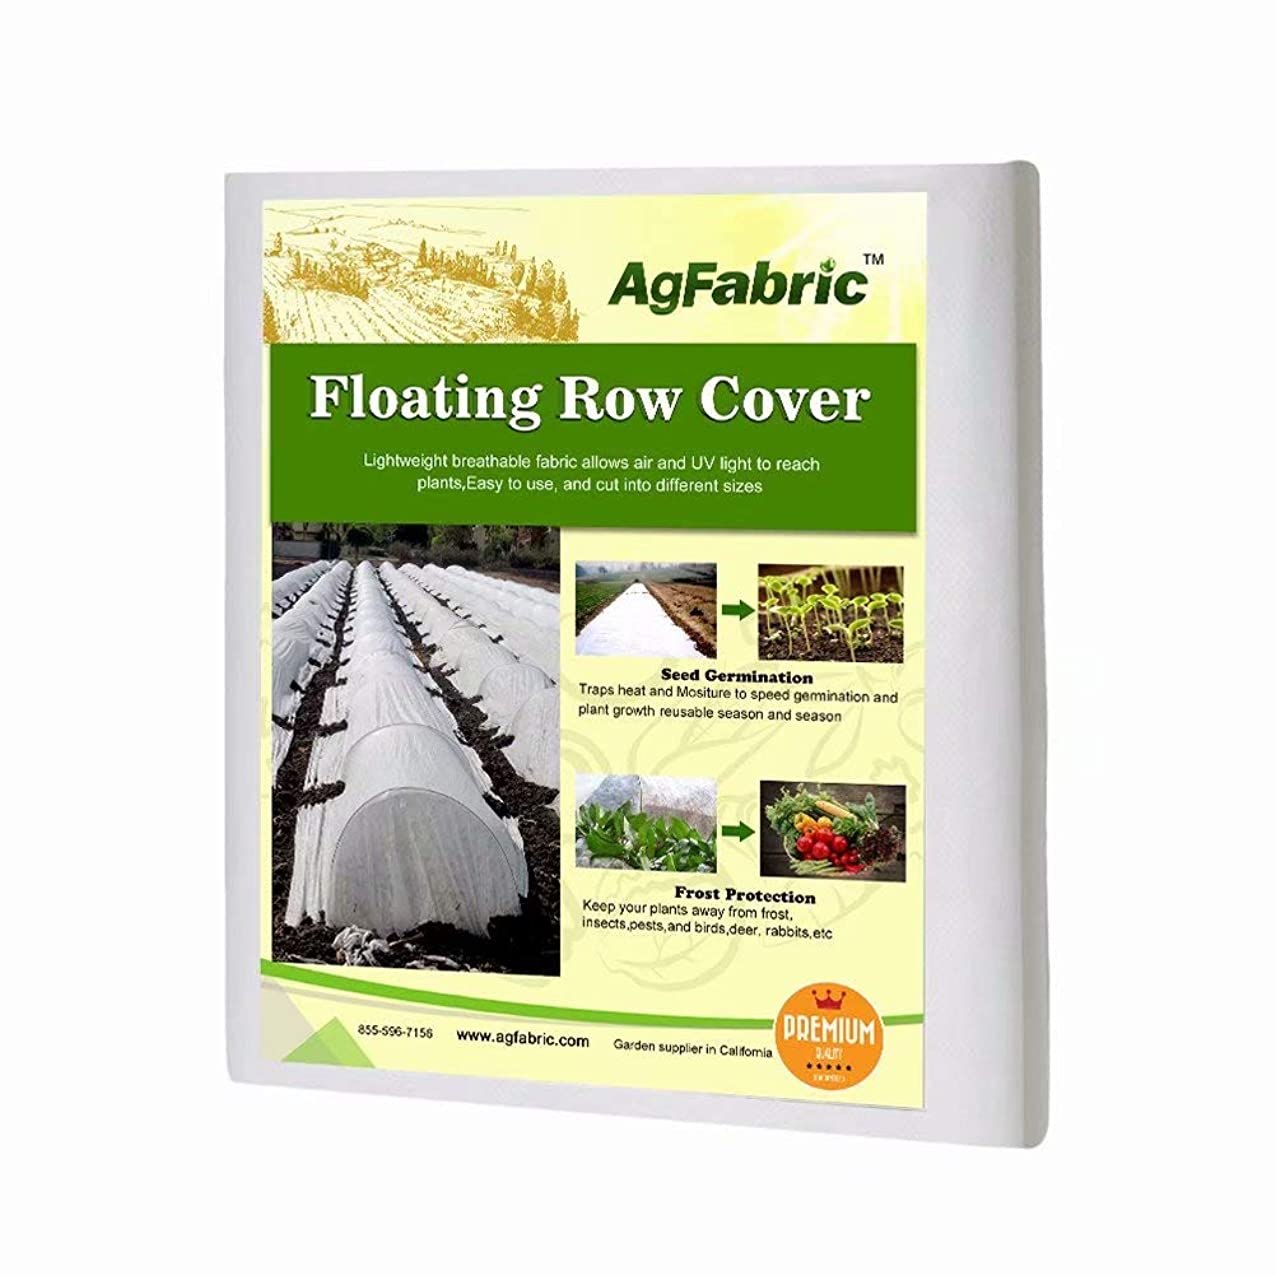 Agfabric Freeze Protection Floating Row Cover,1.2oz 14'x15' Winter Garden Plant Cover Frost Protection Plant Blanket tusujdlibbqoj835